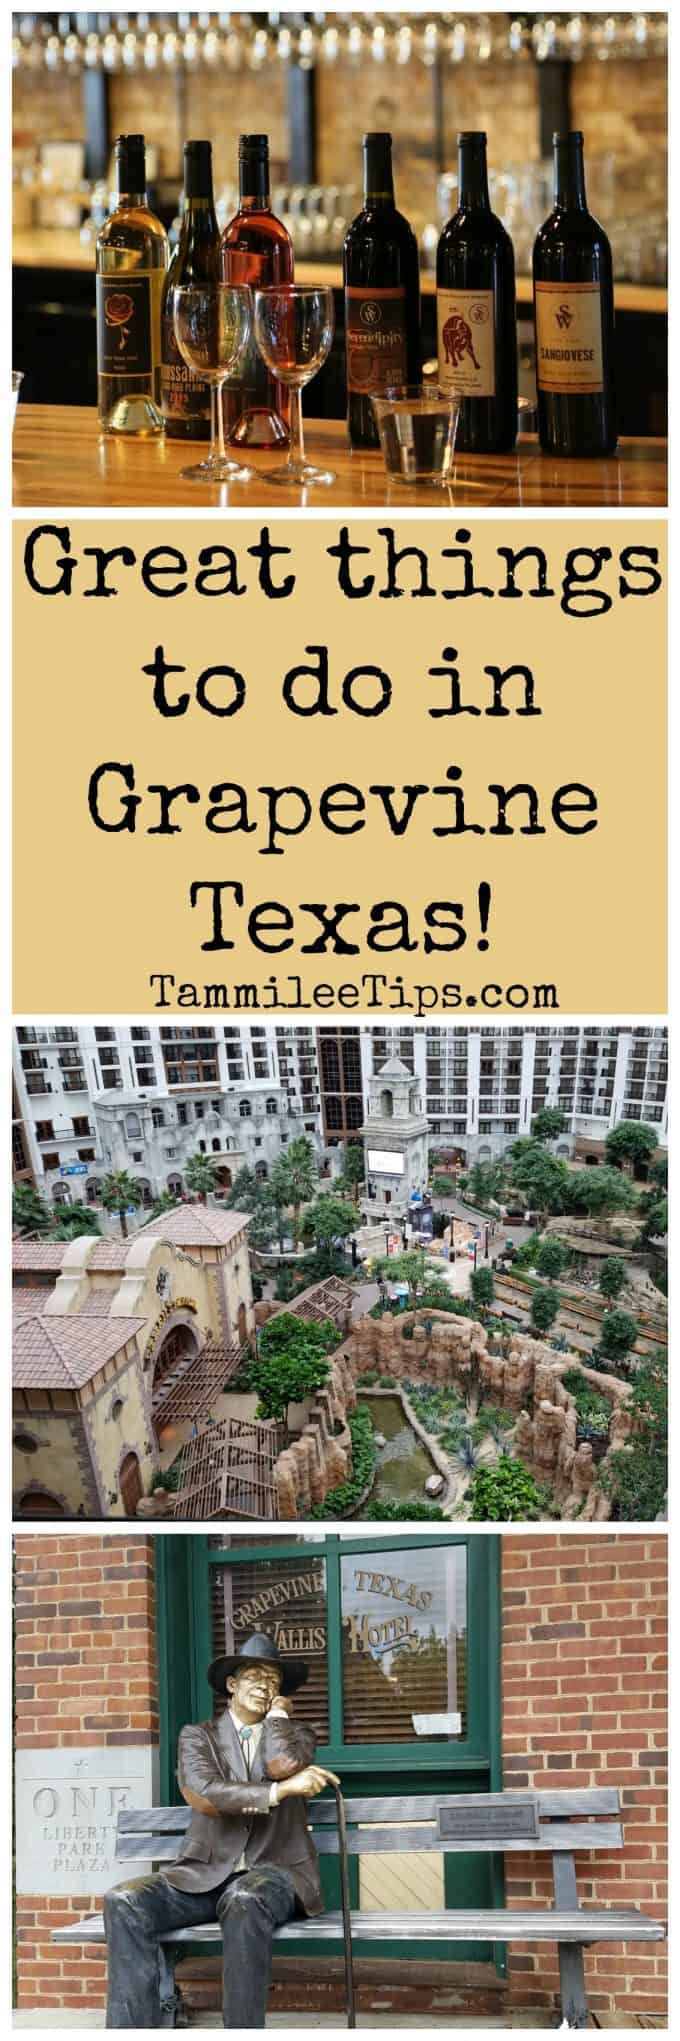 THINGS TO DO IN GRAPEVINE TX